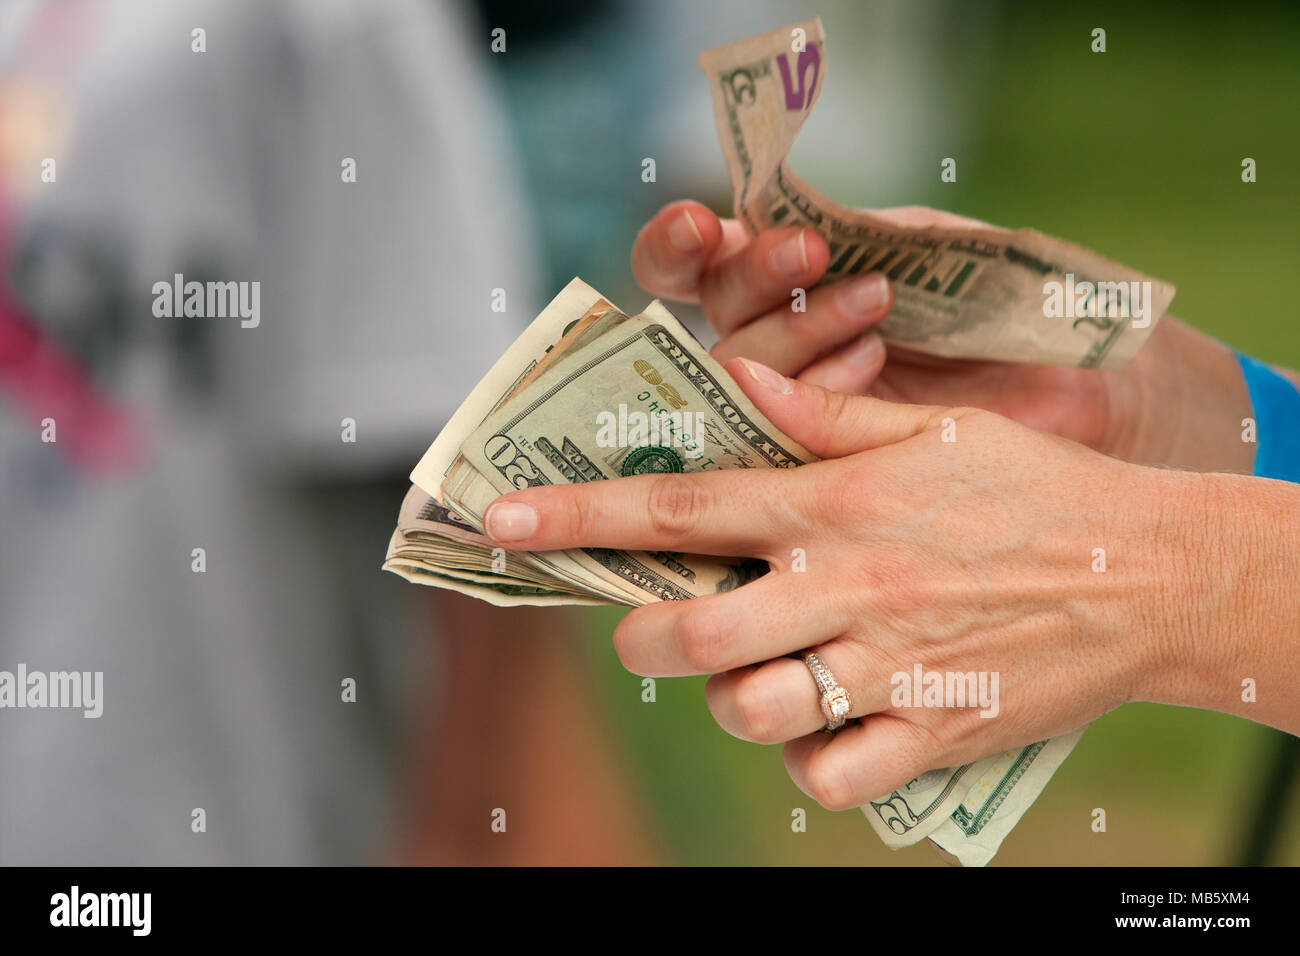 Closeup of a vendor's hands counting money to make change on a transaction at the Annual Atlanta Ice Cream Festival on July 27, 2013 in Atlanta, GA. - Stock Image